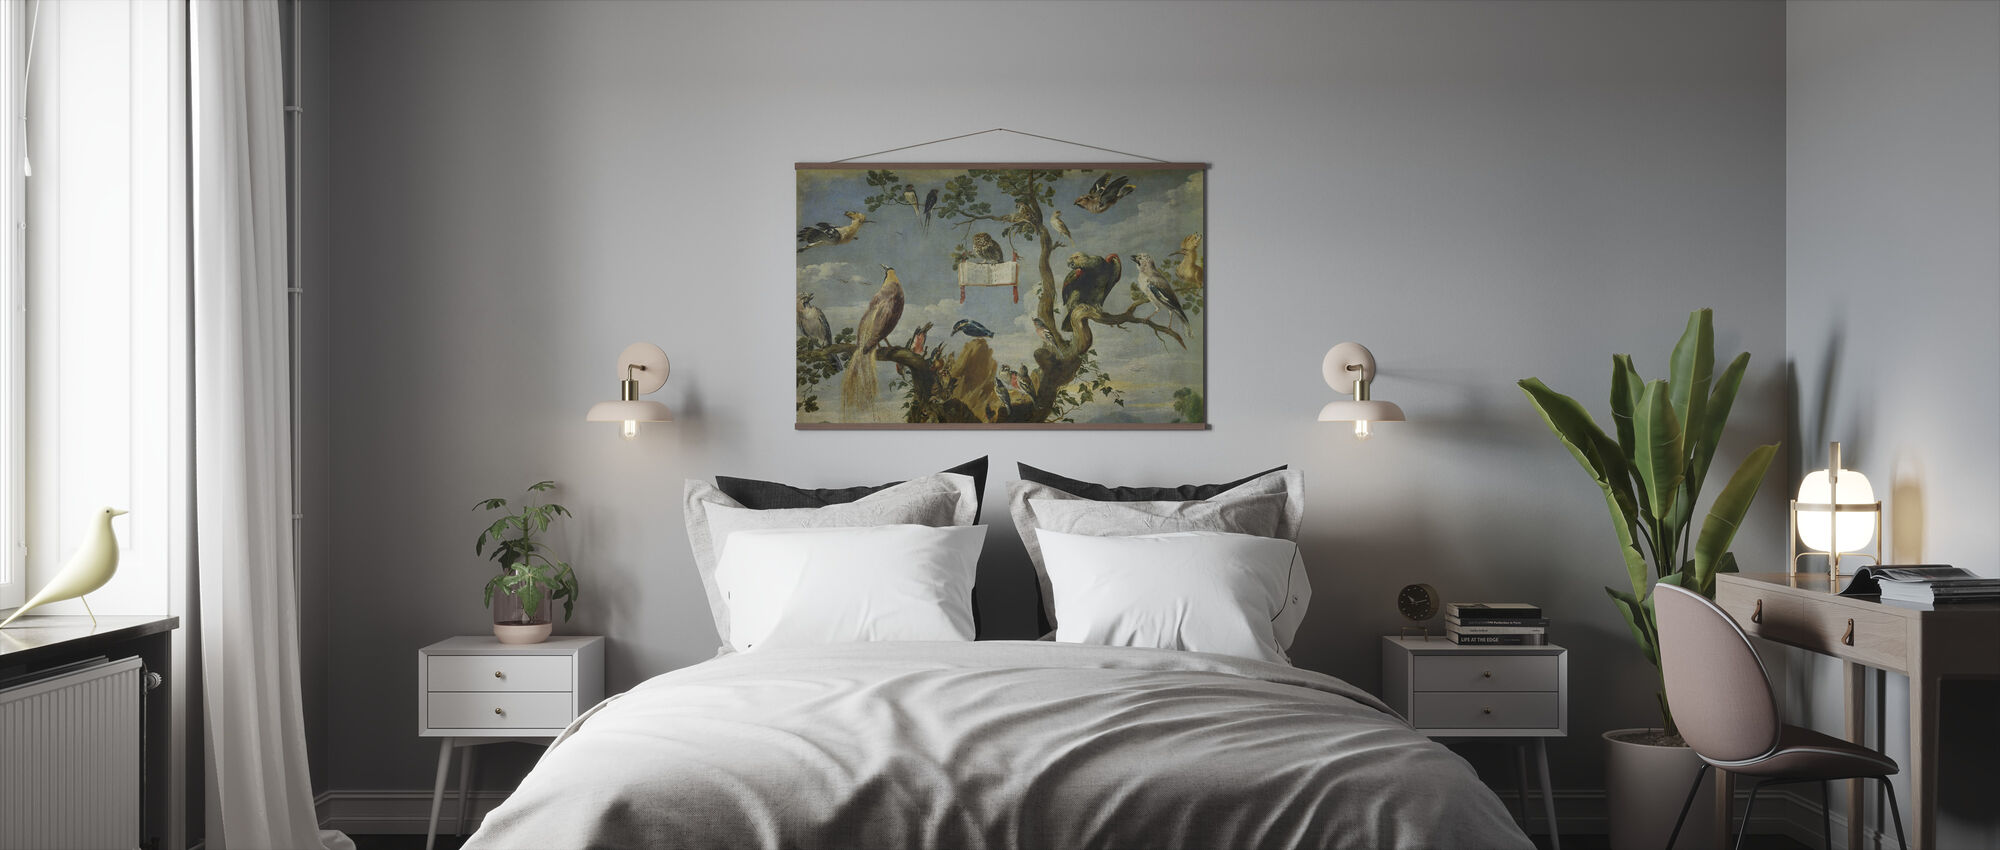 Concert of the Birds - Frans Snyders - Poster - Bedroom